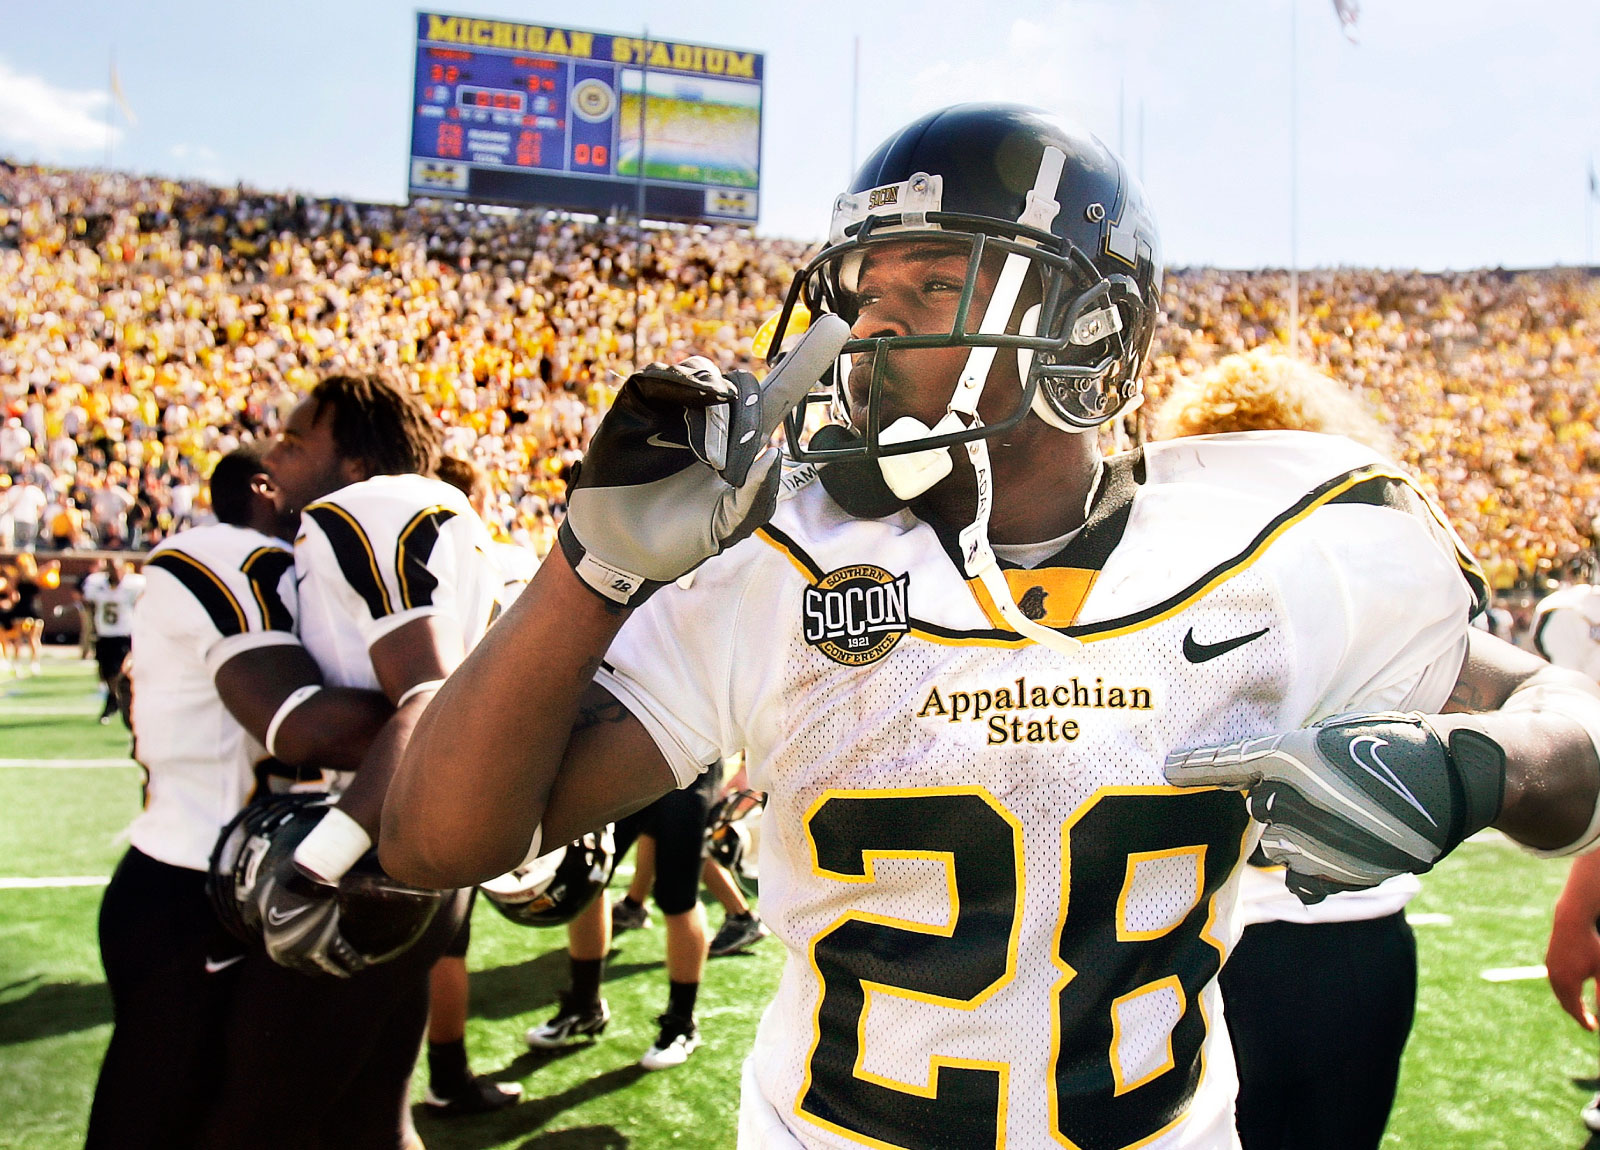 952e647f665 Seven years ago undersung Appalachian State brought down the Big House—and  rocked college football—with a season-opening upset of Michigan.